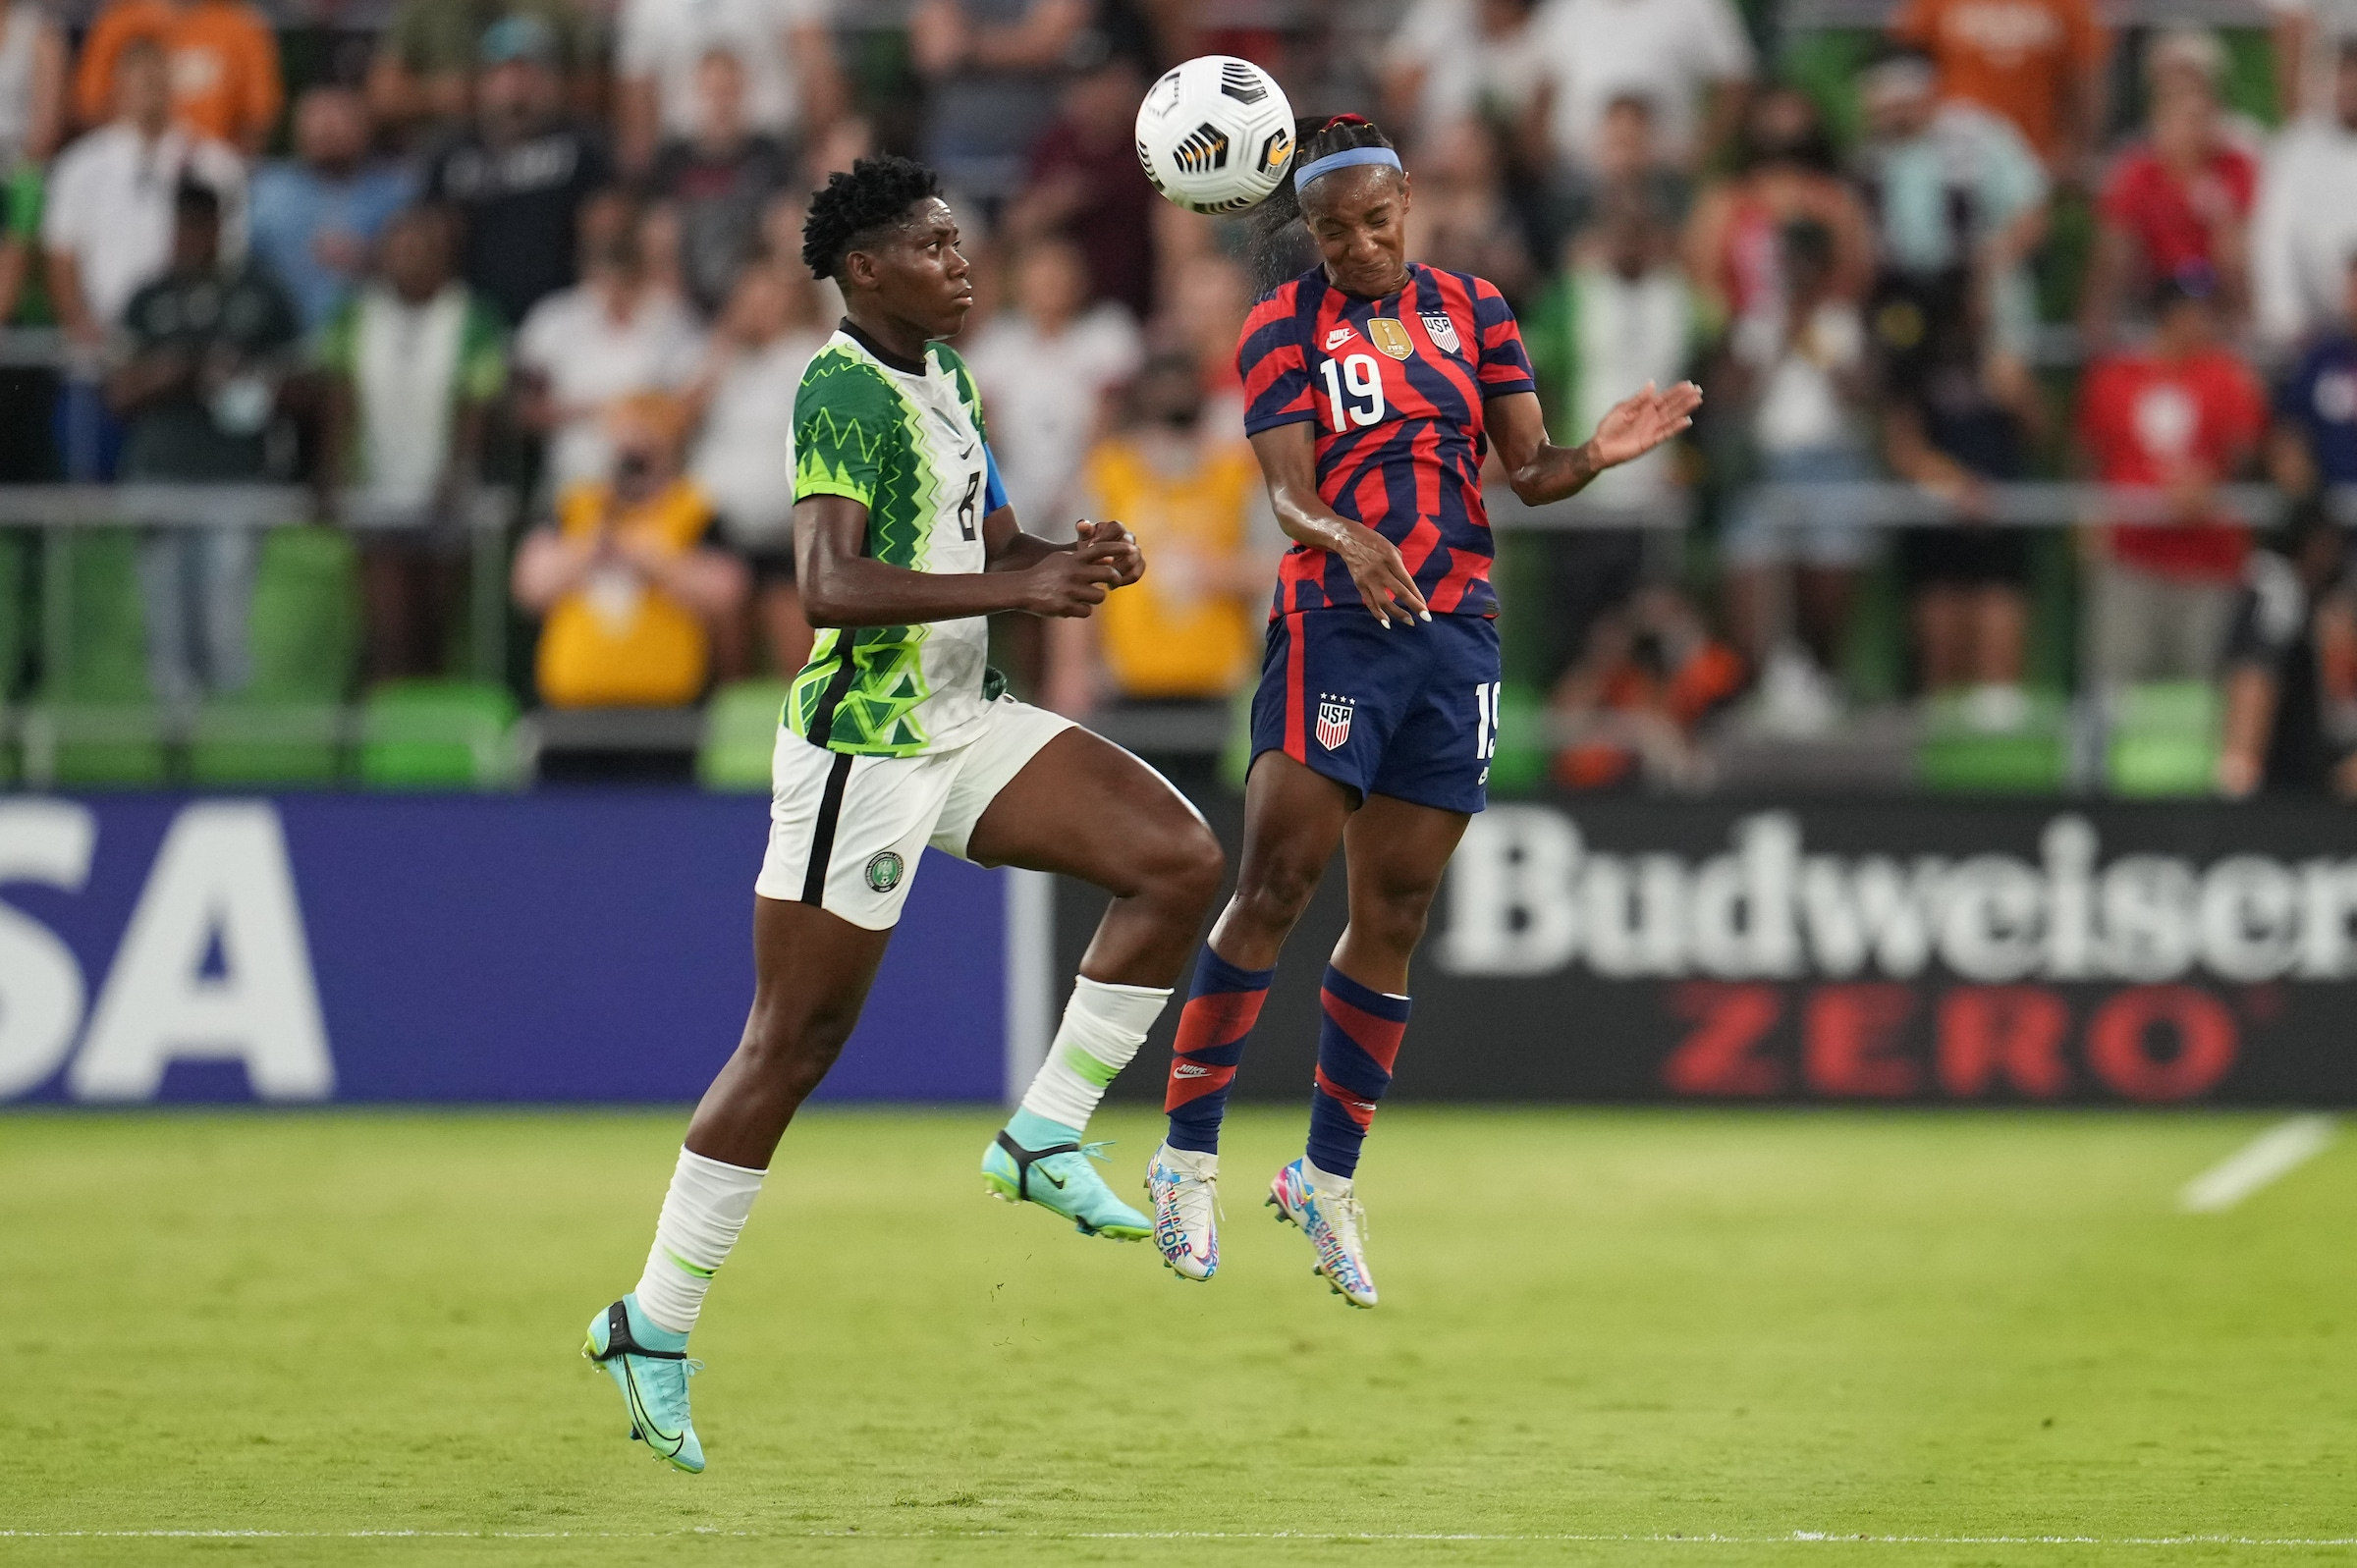 USA Wins Summer Series After Defeating Super Falcons